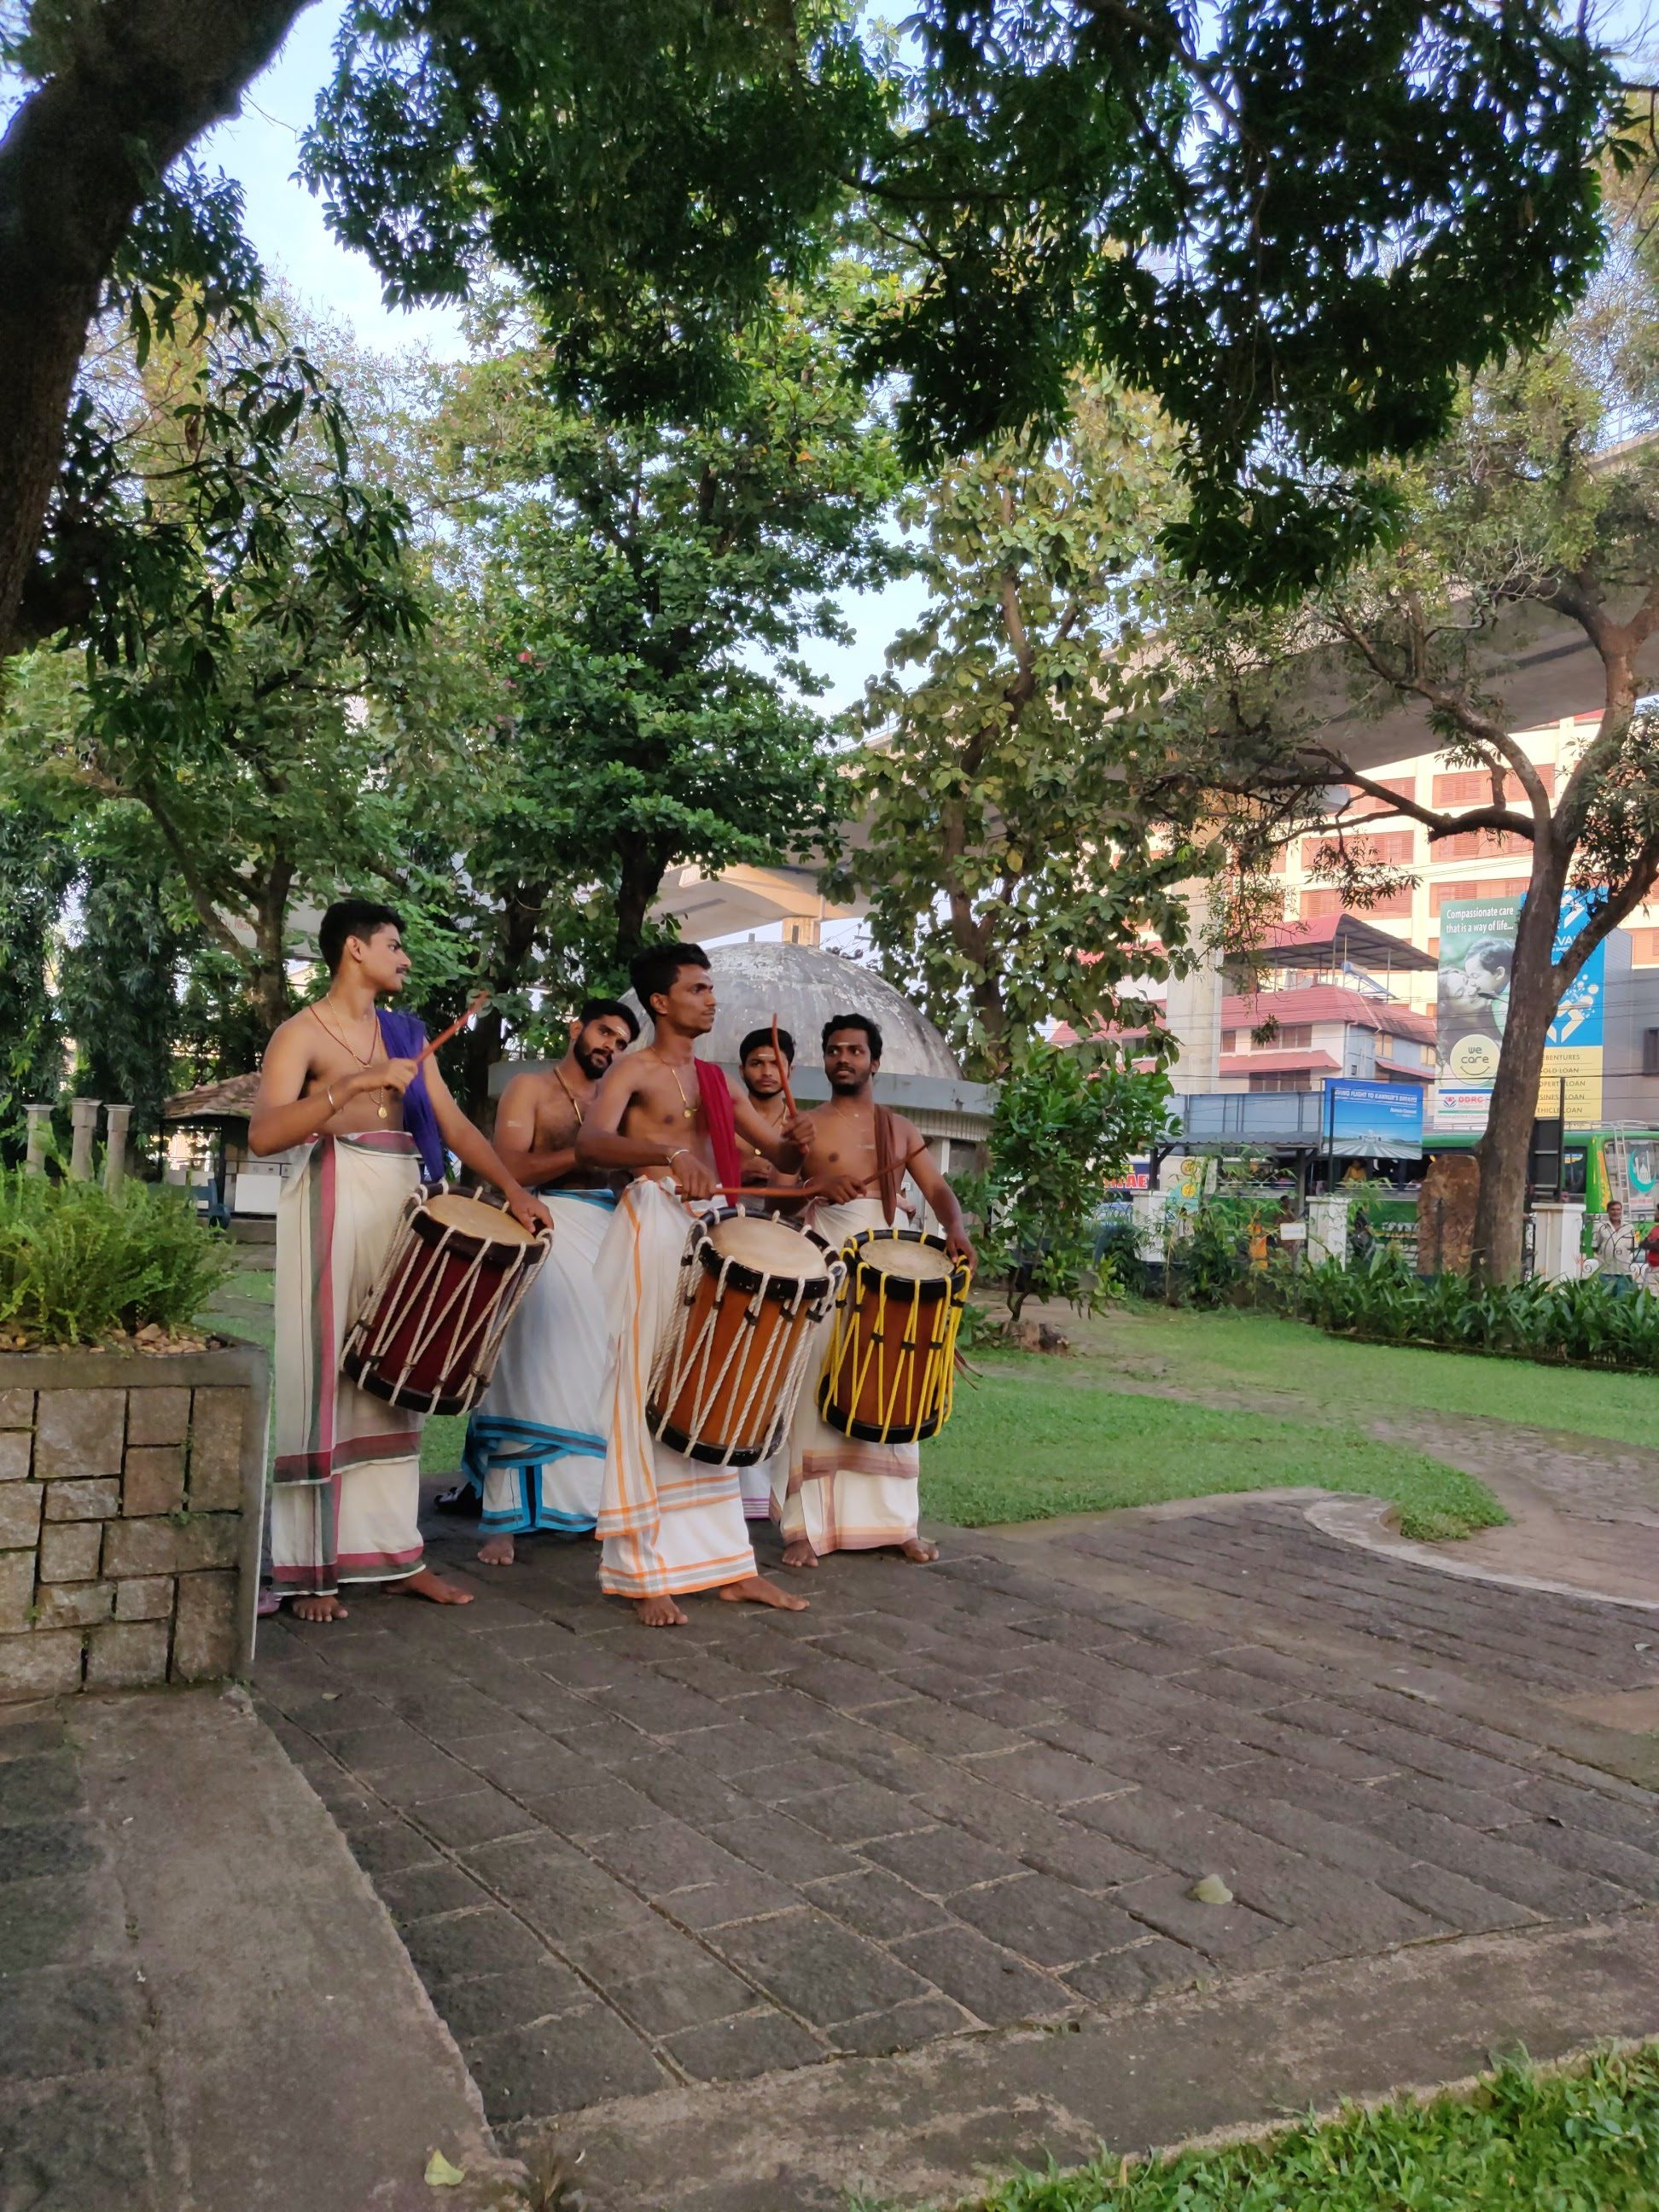 The Chenda team of Kalamandalam Ratheesh Bhas and Group from Shoranur opened the Deśaj Festival at the feet of the statue of Parasurama in front of the History Museum